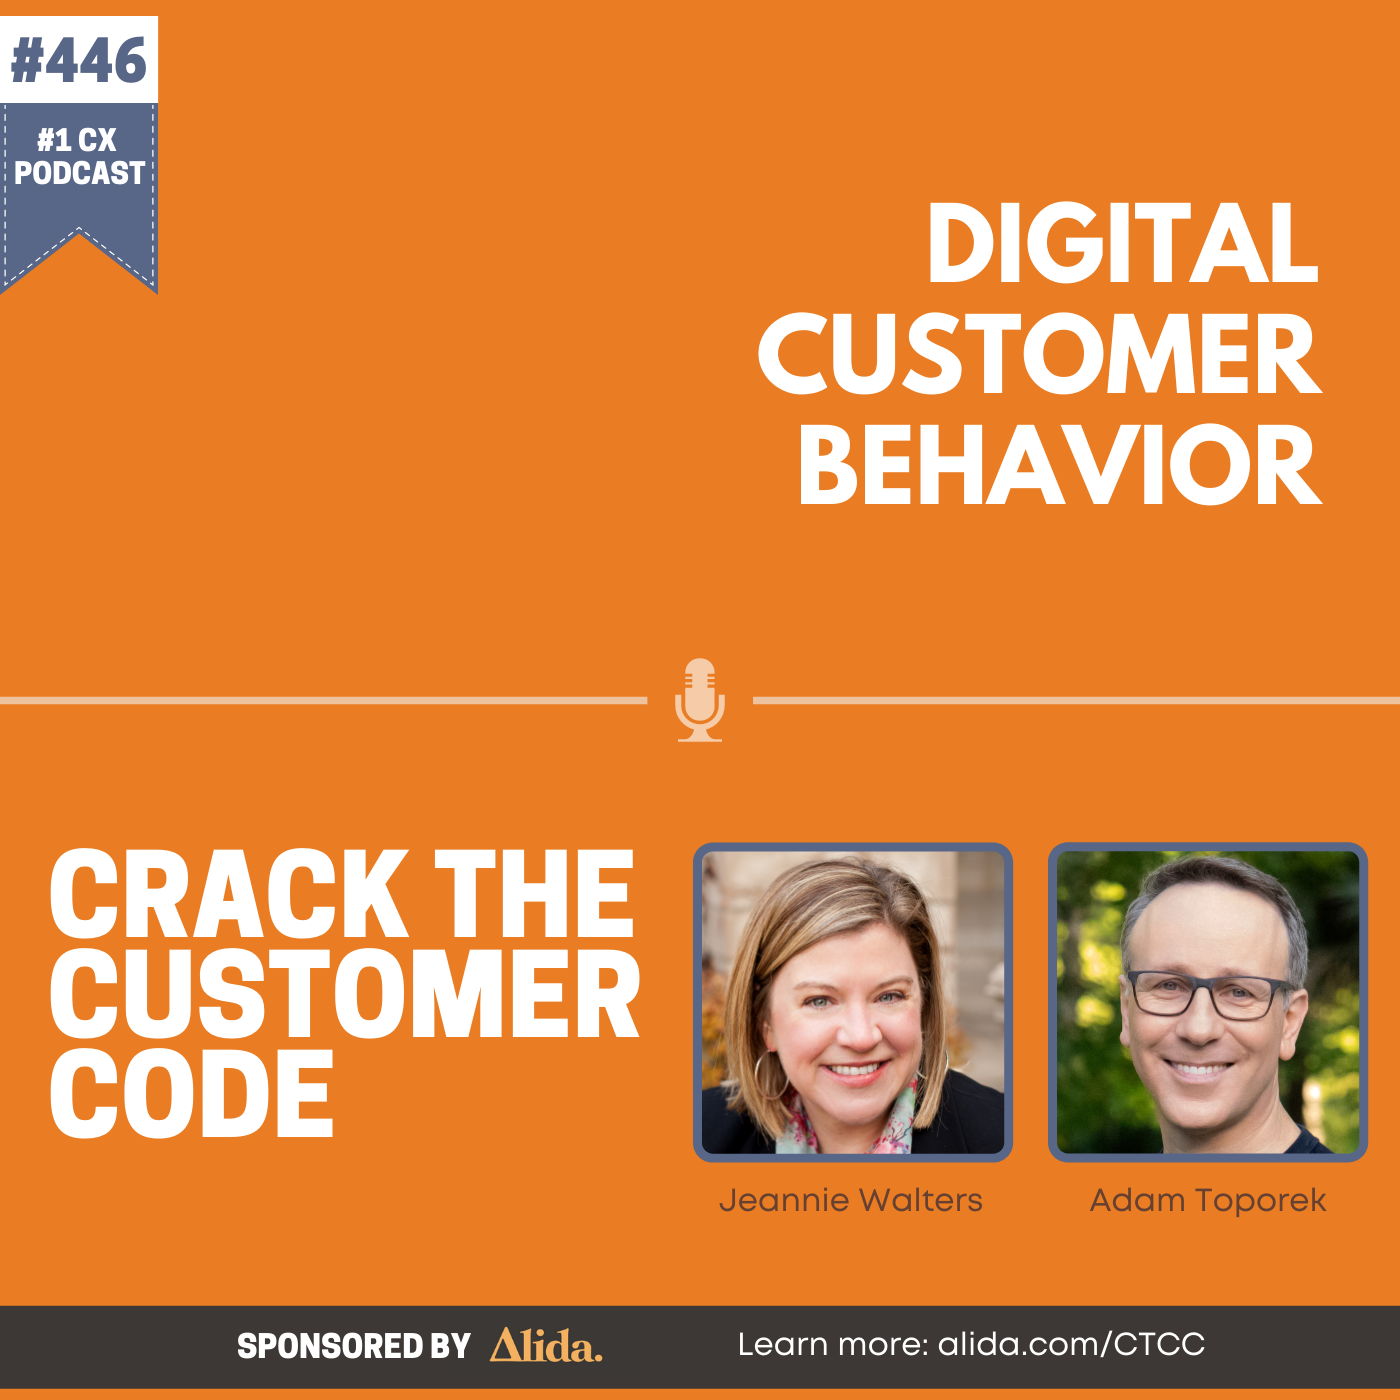 446: Digital Customer Behavior